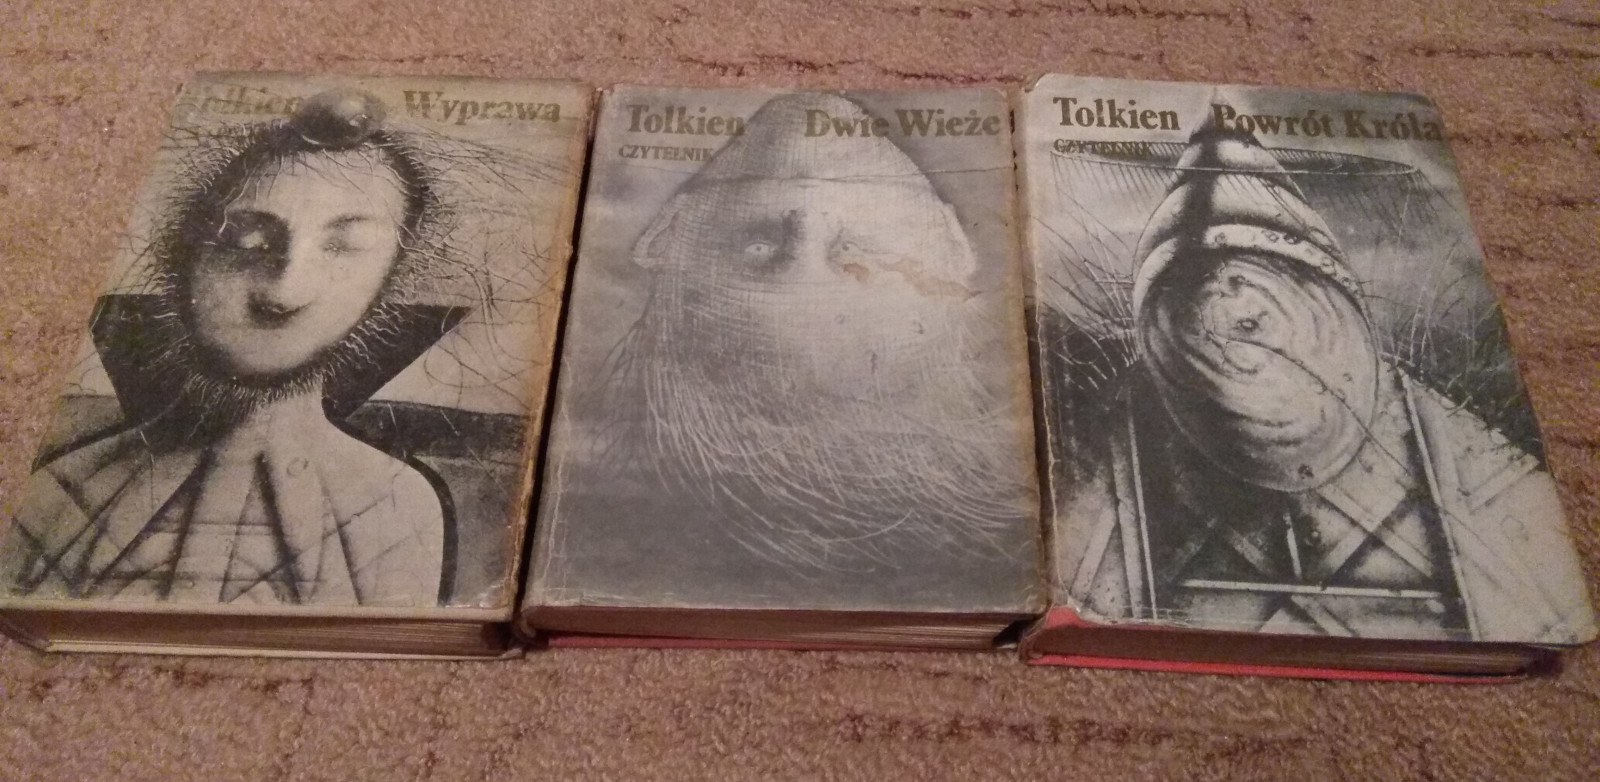 Three book with weird pictures on them. Left to right - a character which hair looks slightly plant like, an upside down head and a faceless character in a wizard hat. All pictures are black and white.